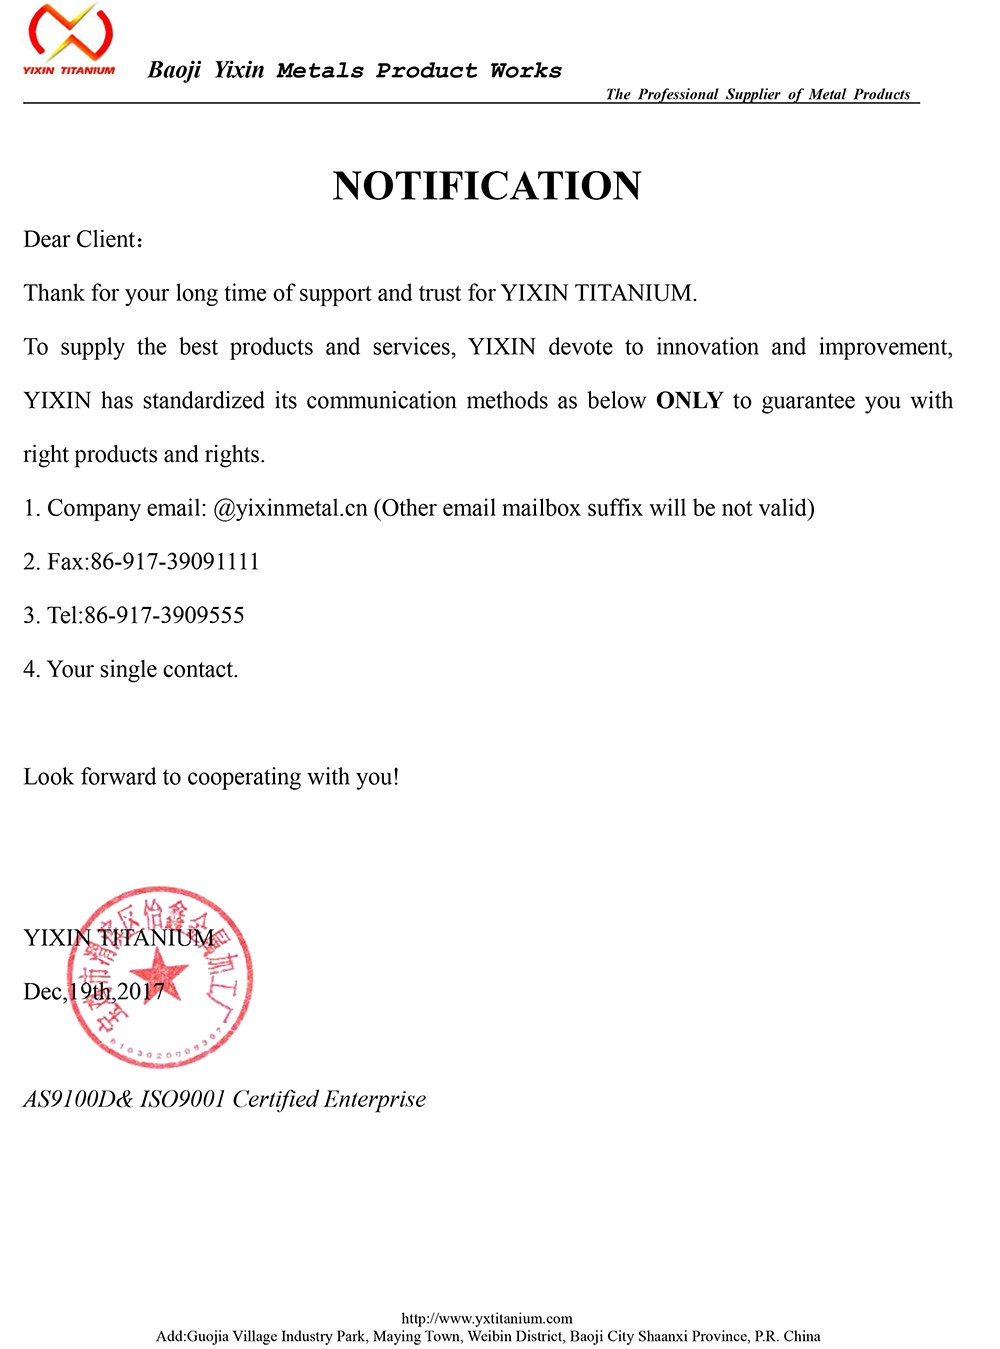 YIXIN Notification for standardized contact.jpg